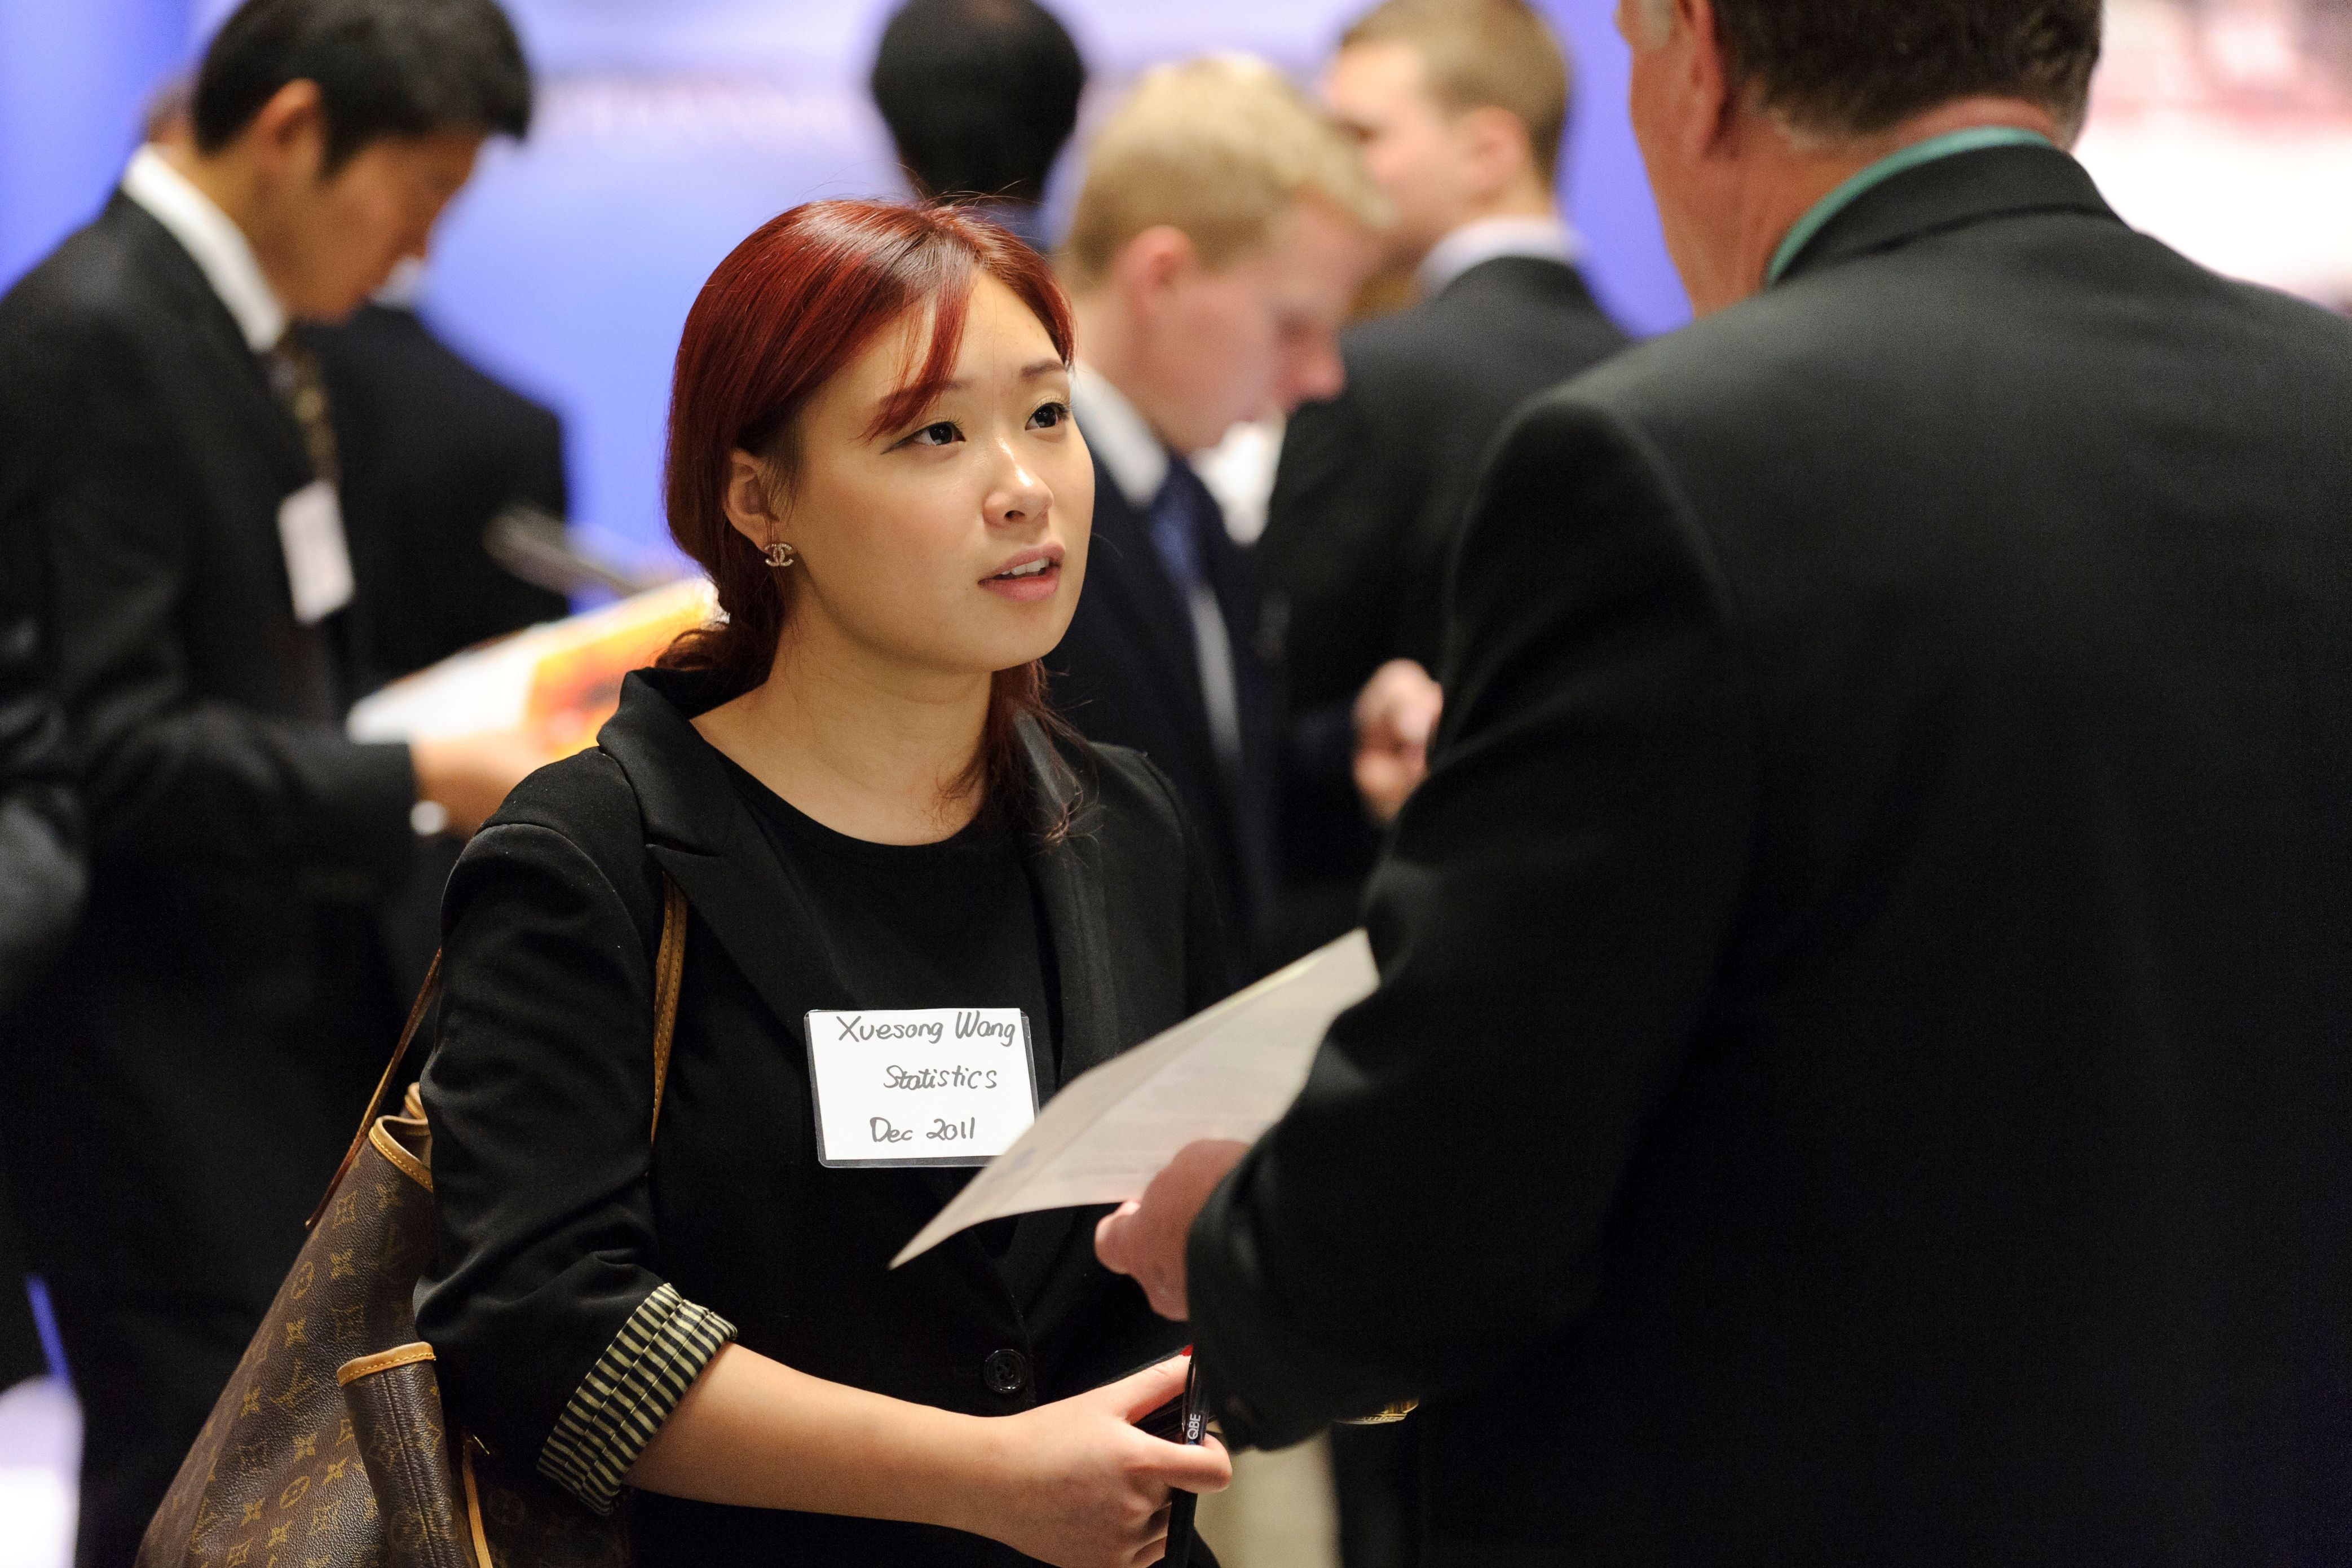 student at a job fair